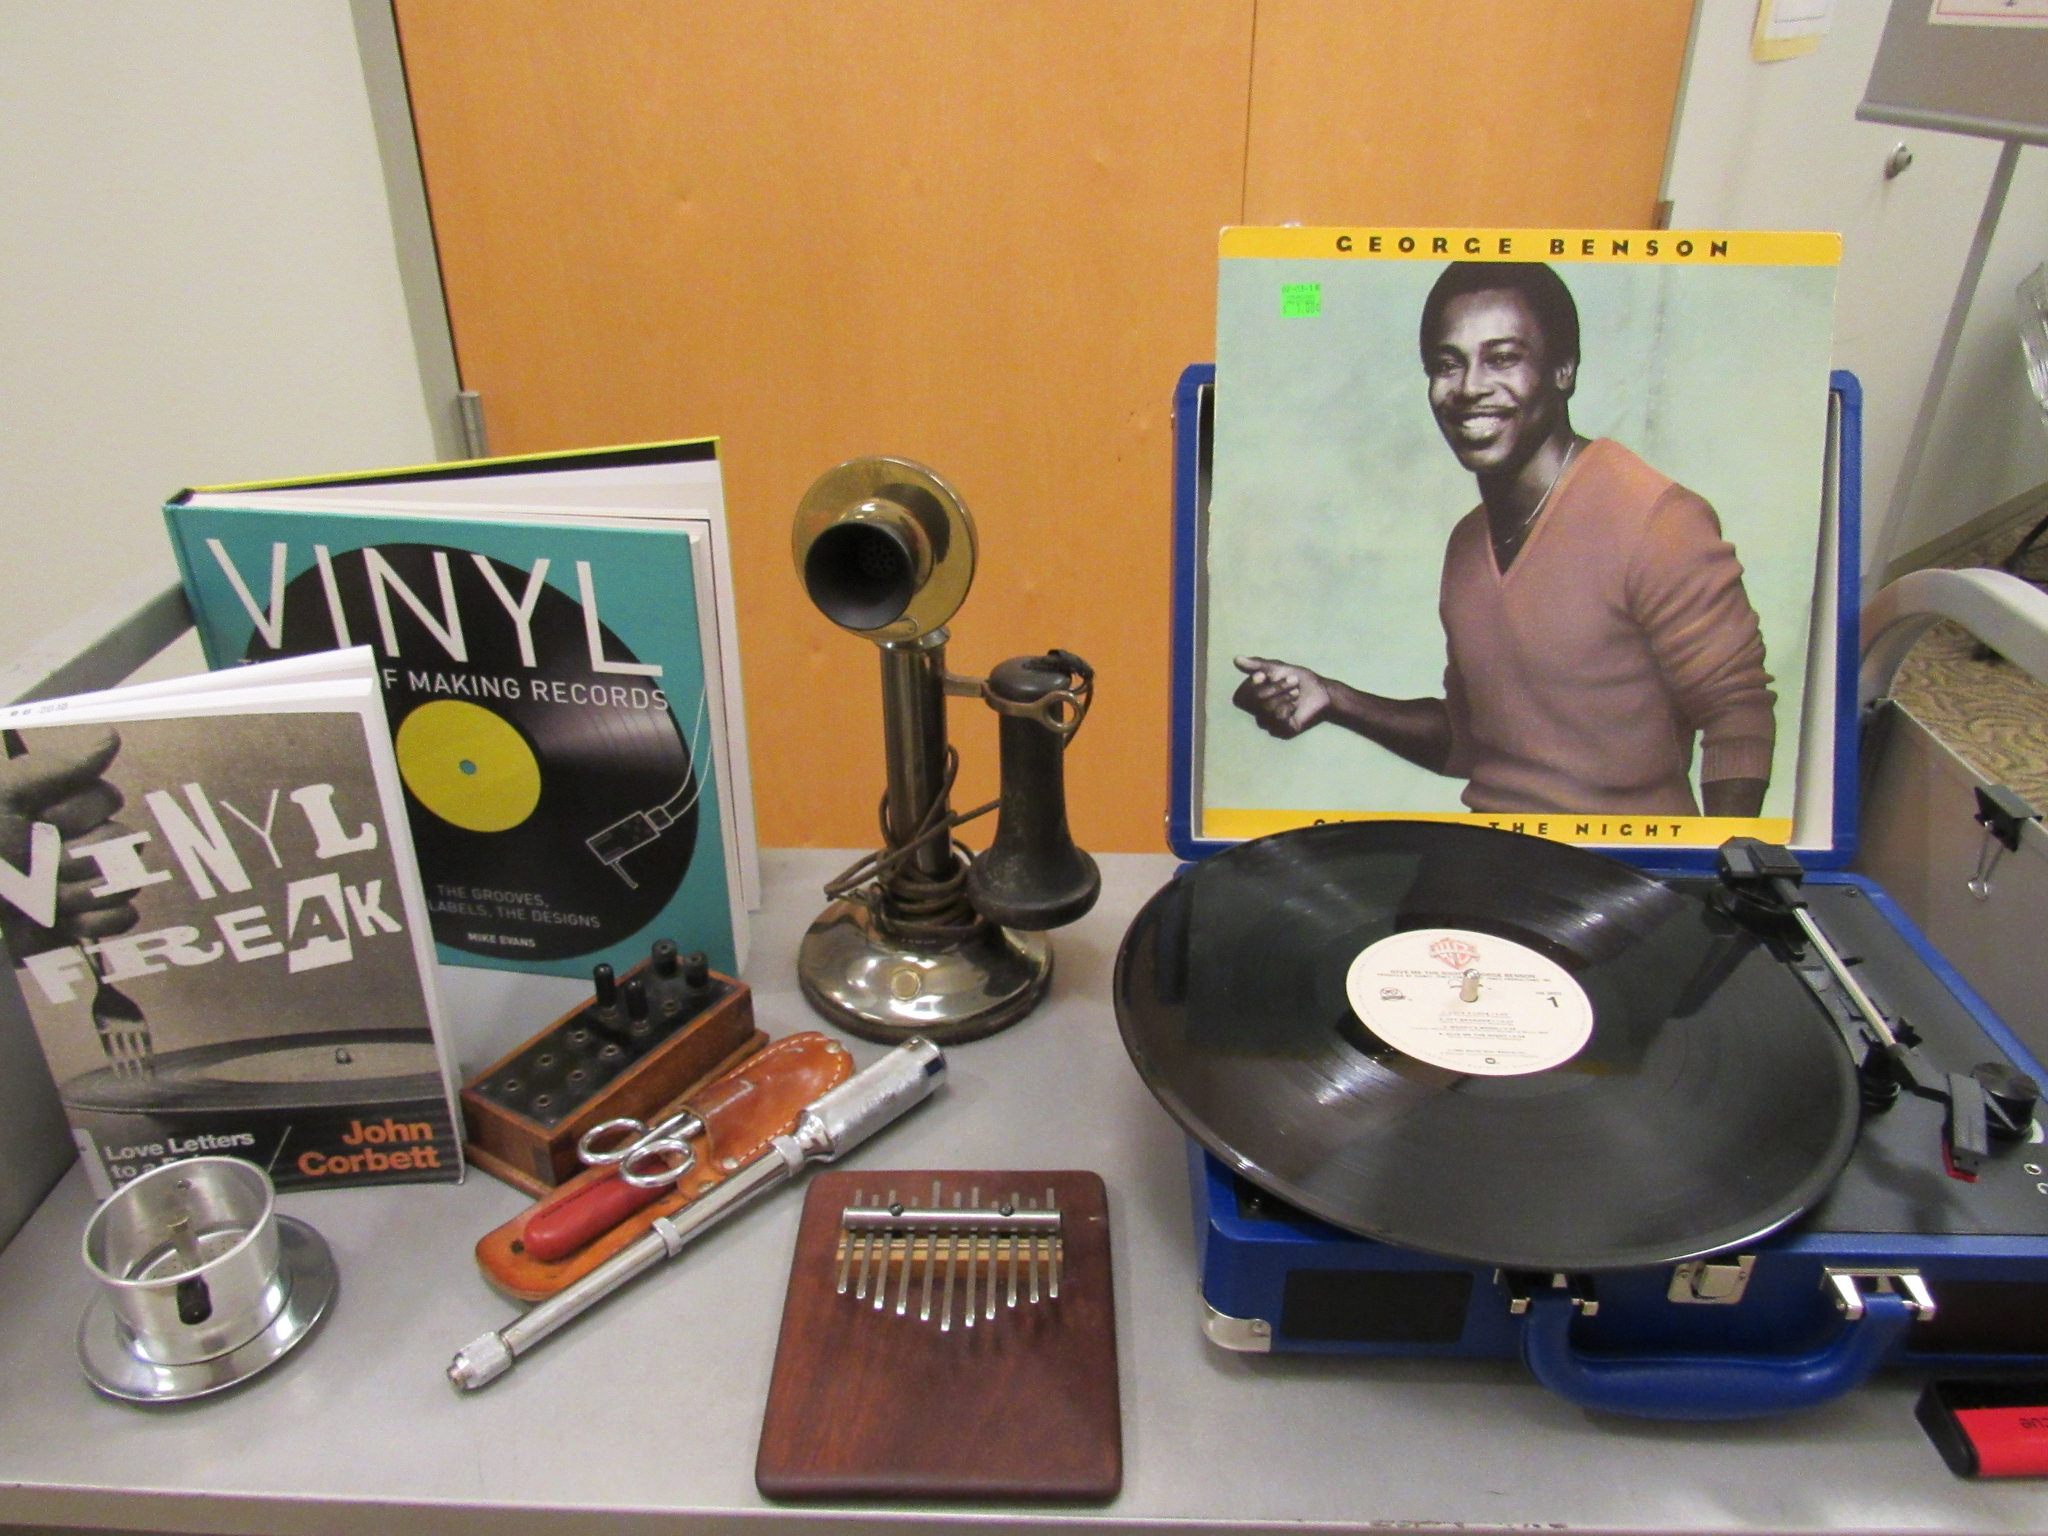 Retro tech collection including a vinyl record and player, an old fashioned phone, and a thumb piano.